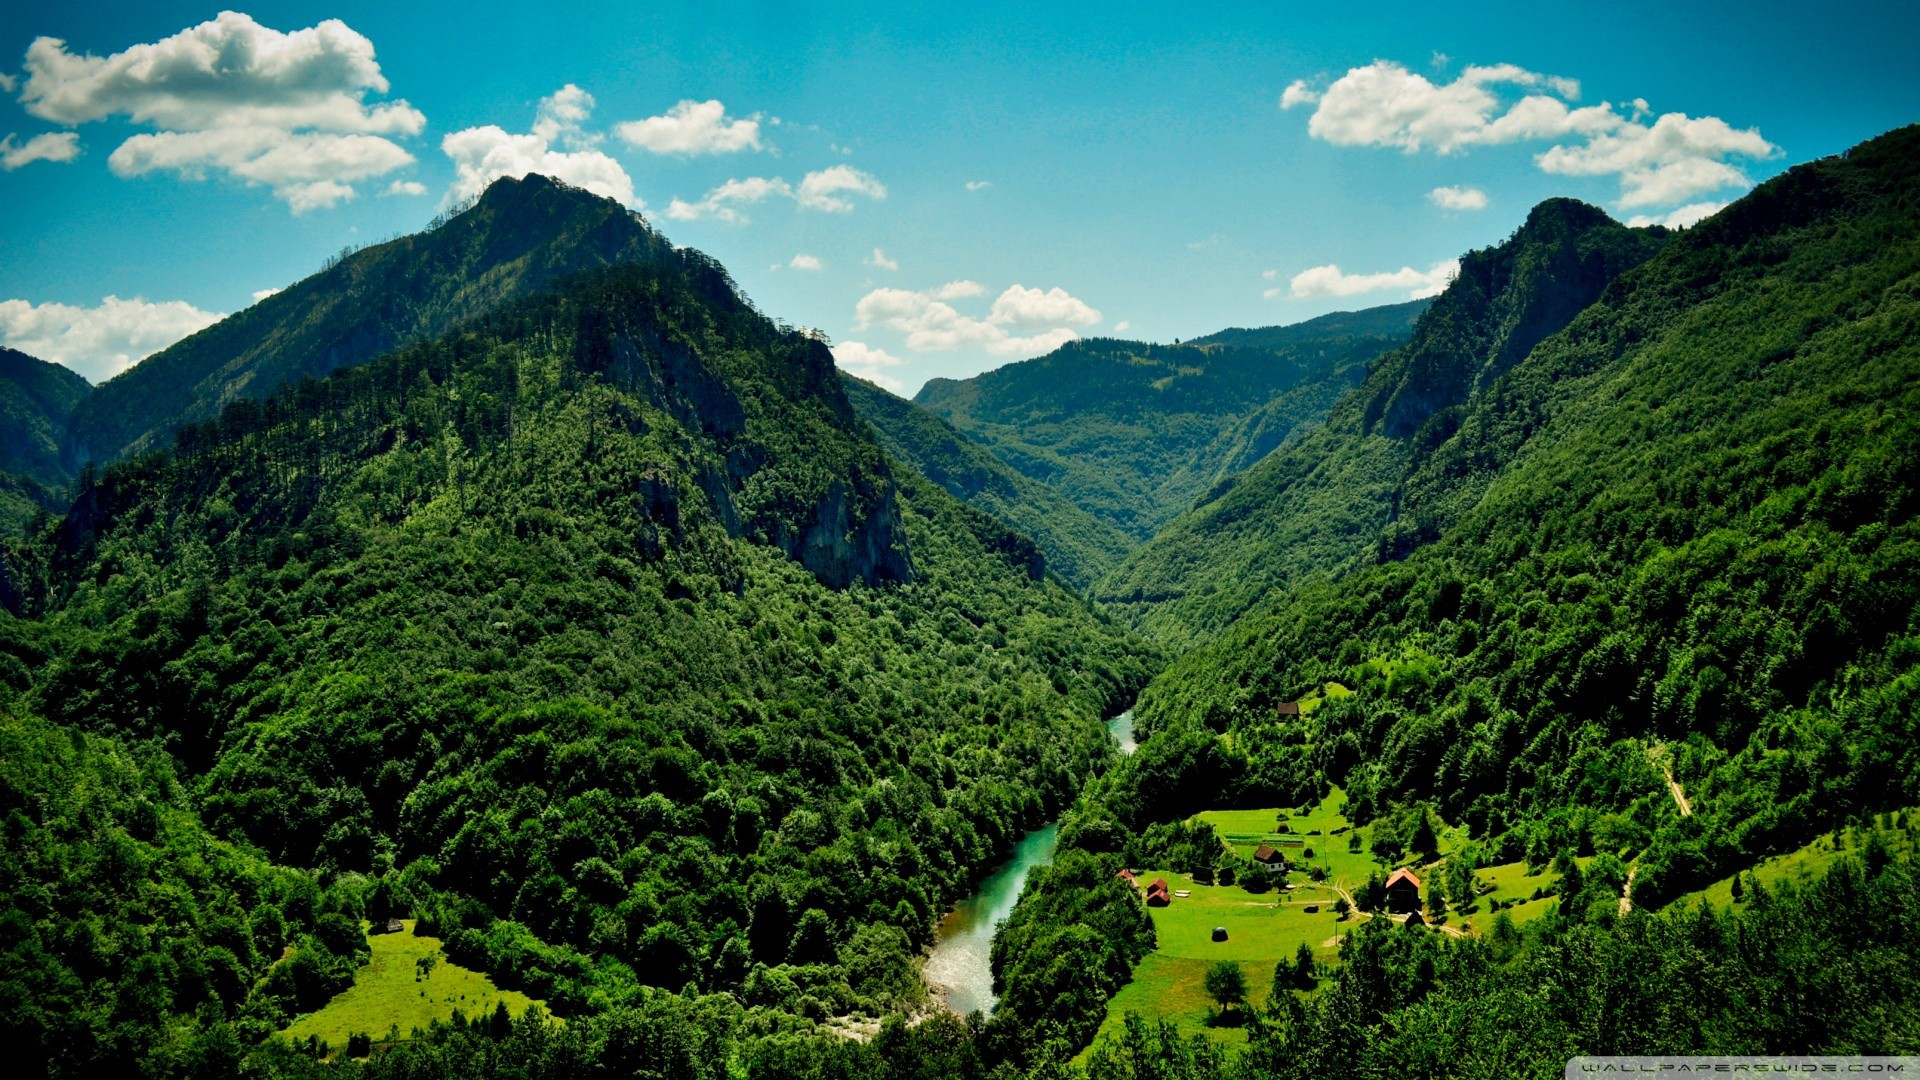 Green mountains and the river wallpapers and images - wallpapers ...